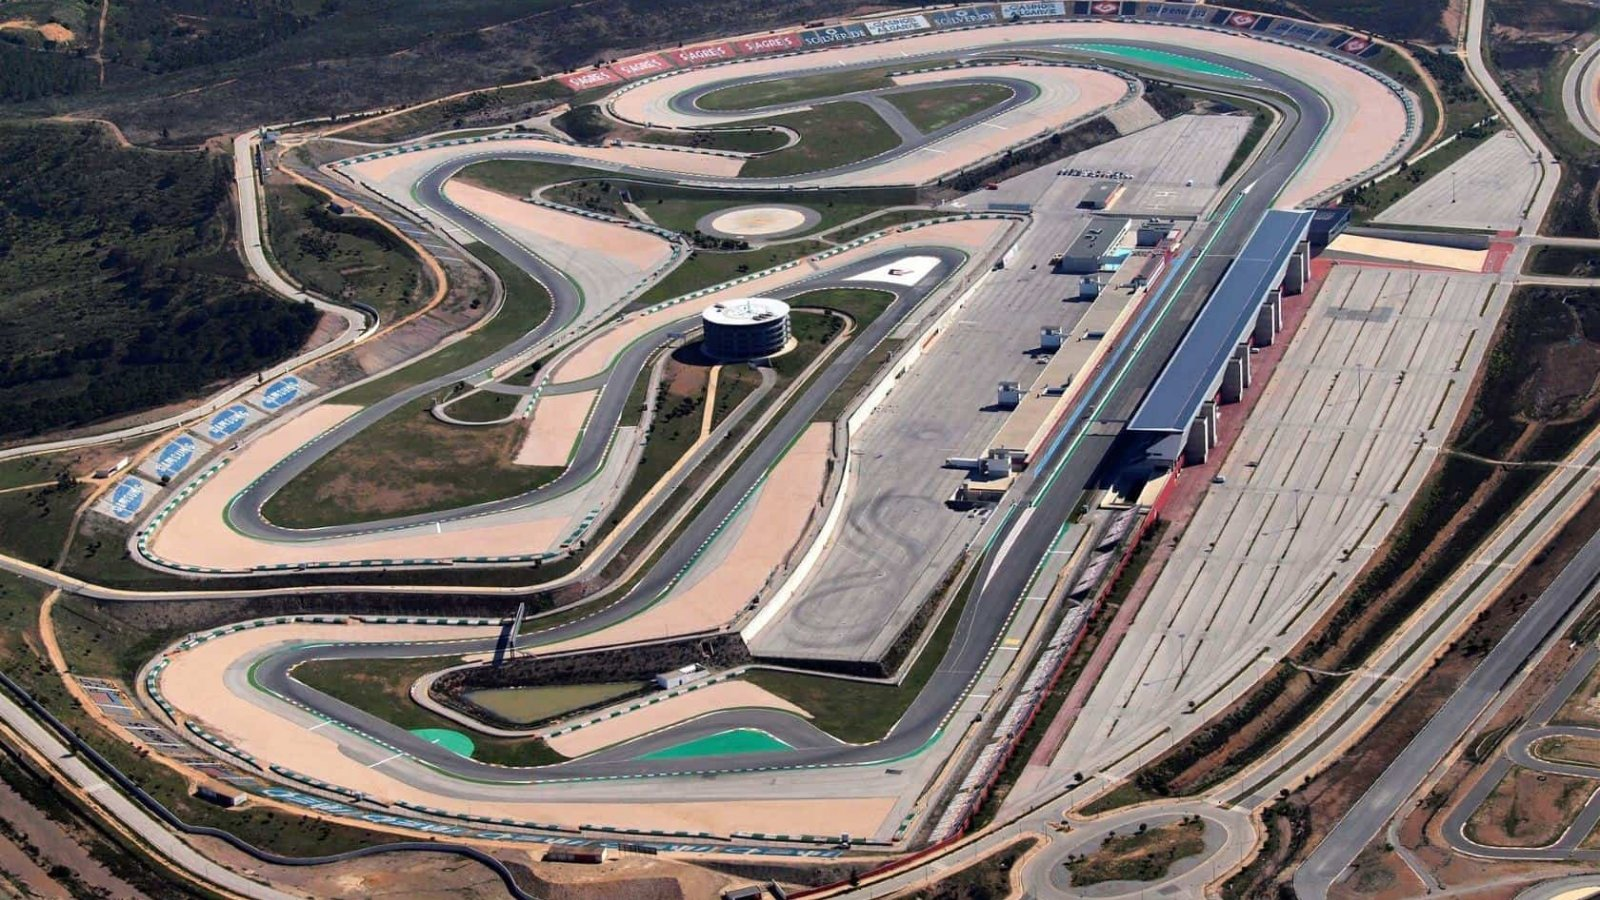 Autódromo Internacional do Algarve - Portimao